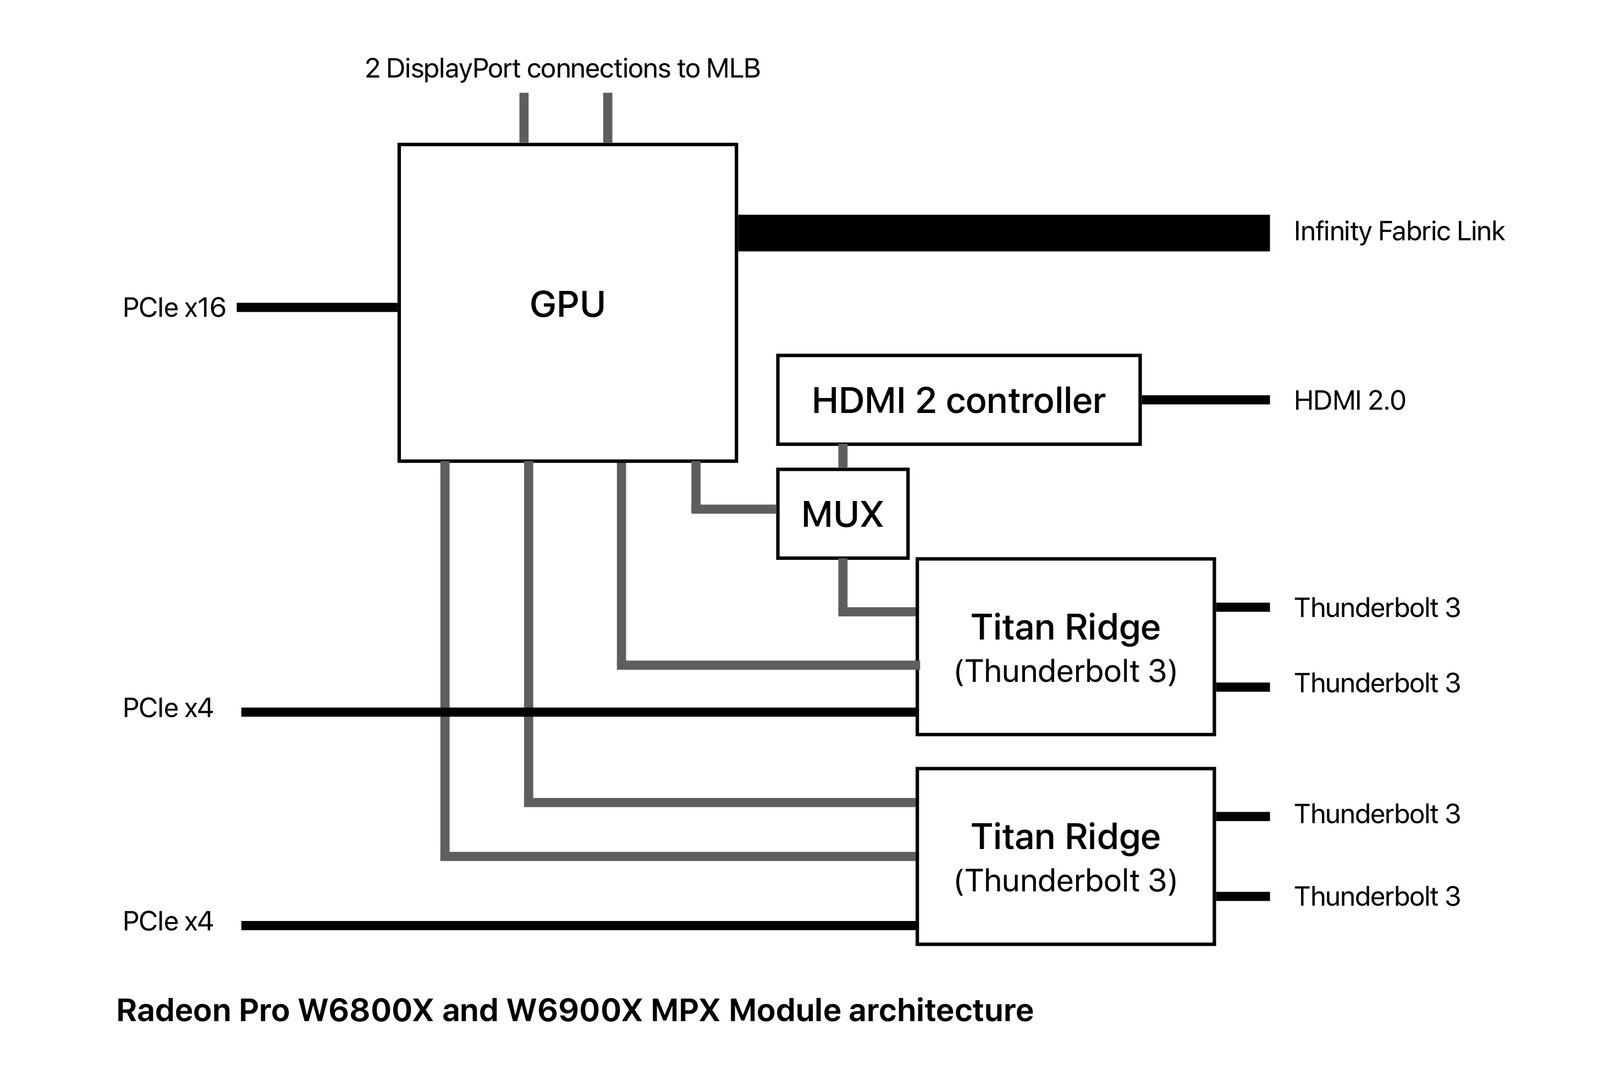 Architecture of the Radeon Pro W6800X and W6900X